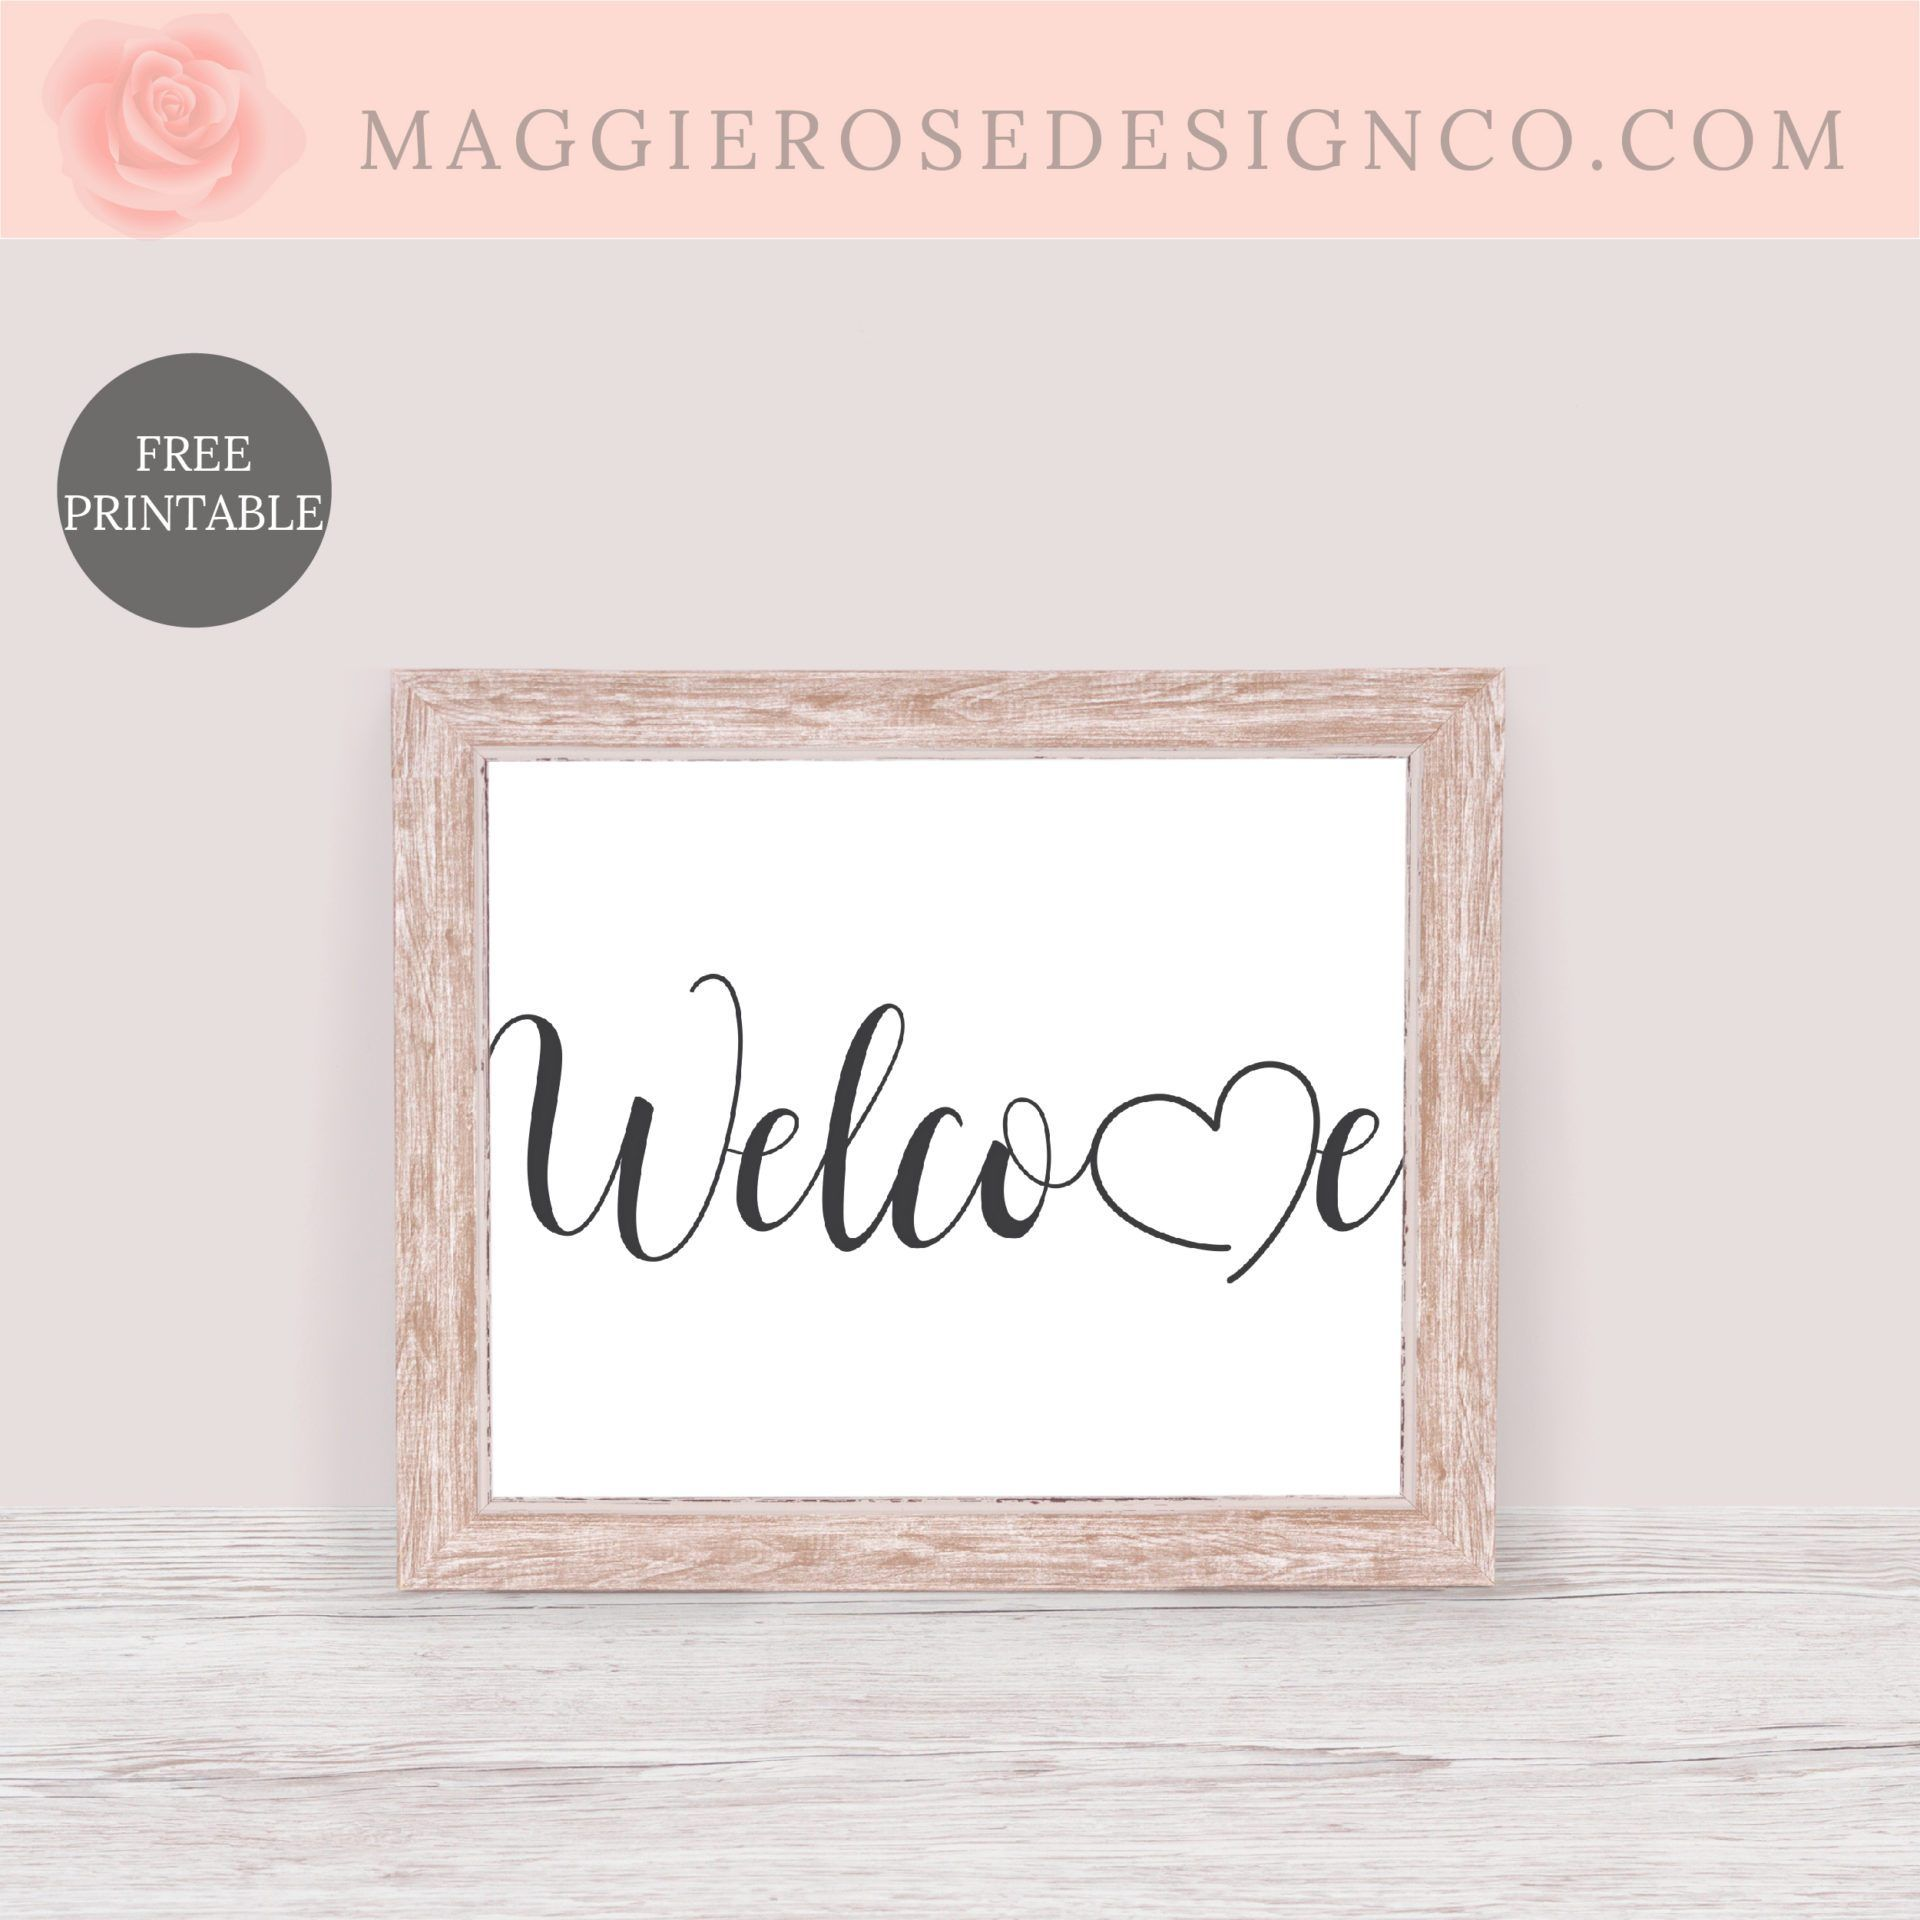 welcome printable  rose design printables diy projects